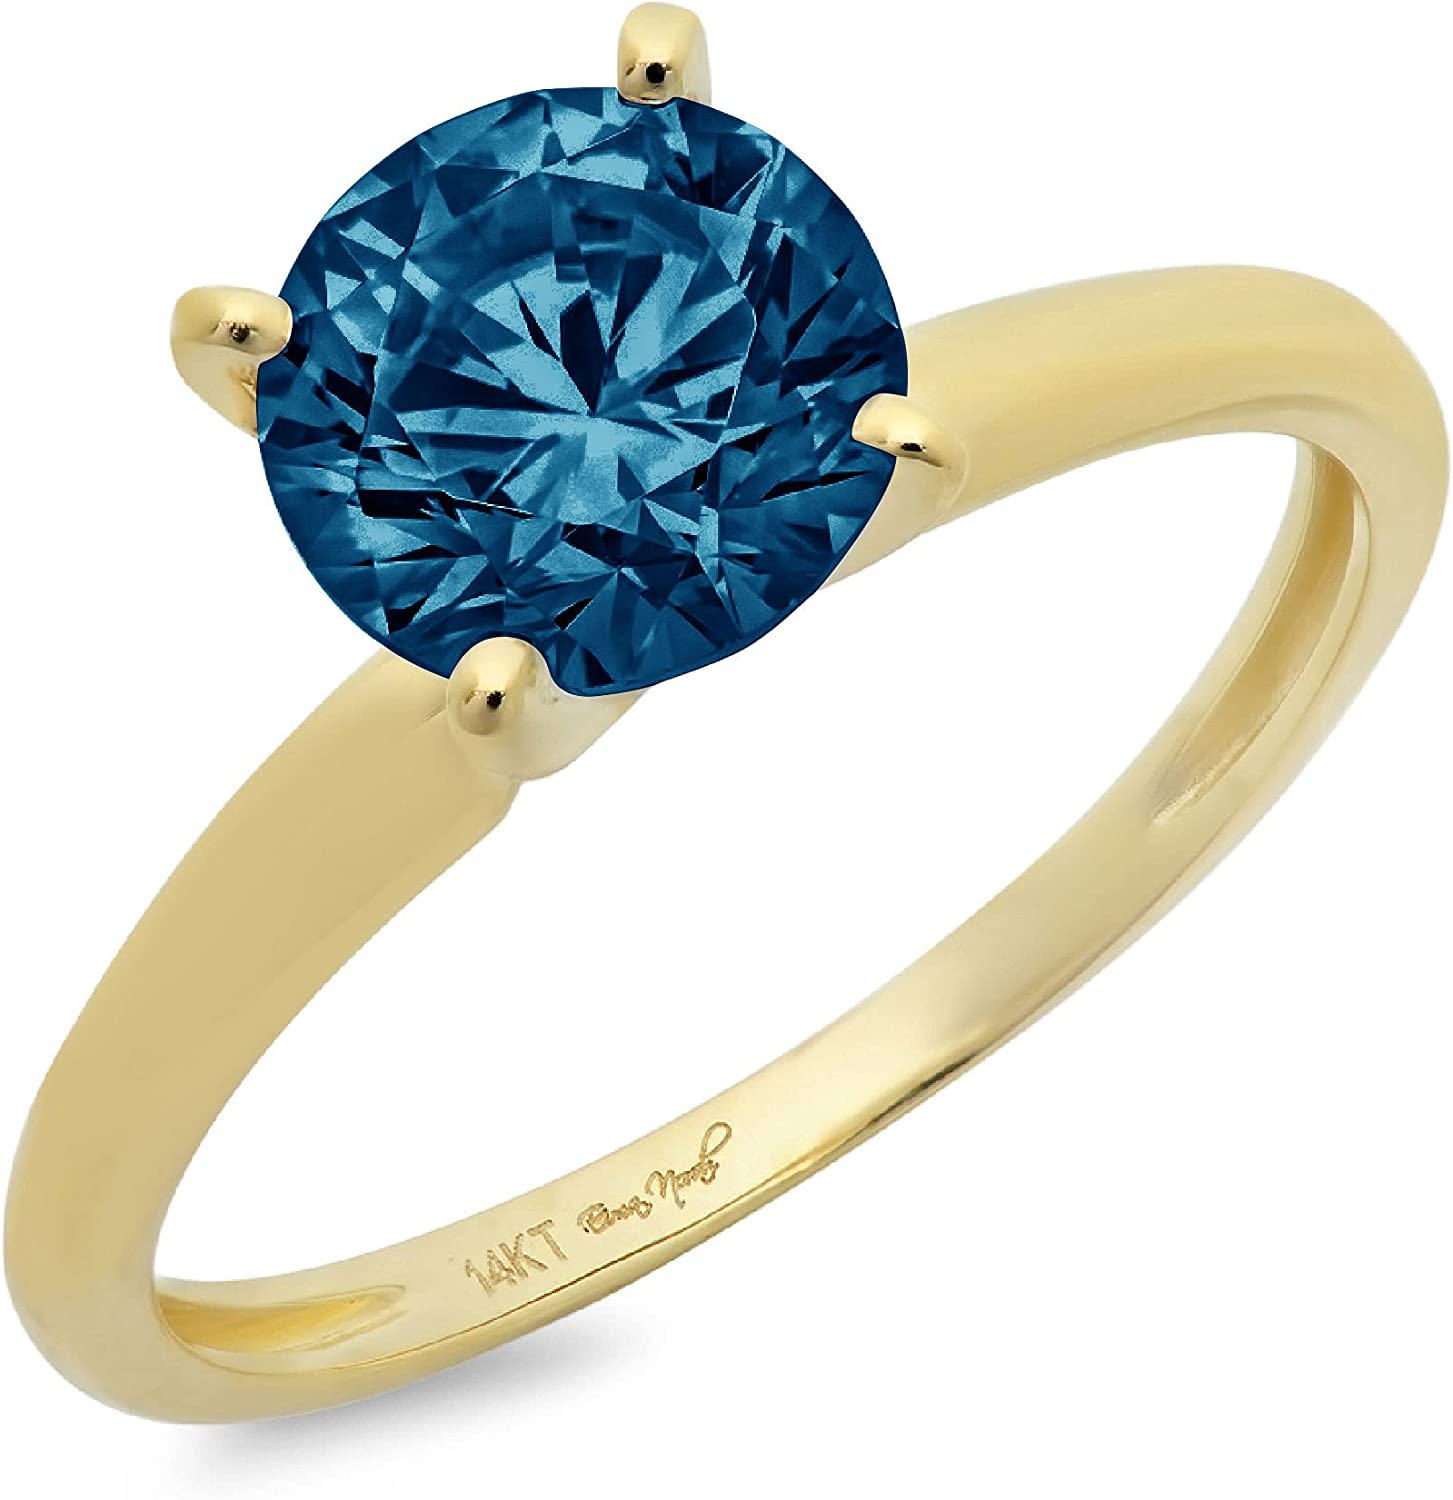 2.6 ct Round Cut Solitaire Stunning Flawless London Blue Topaz Excellent 4-Prong Classic Designer Statement Ring Solid 18K Yellow Gold for Women